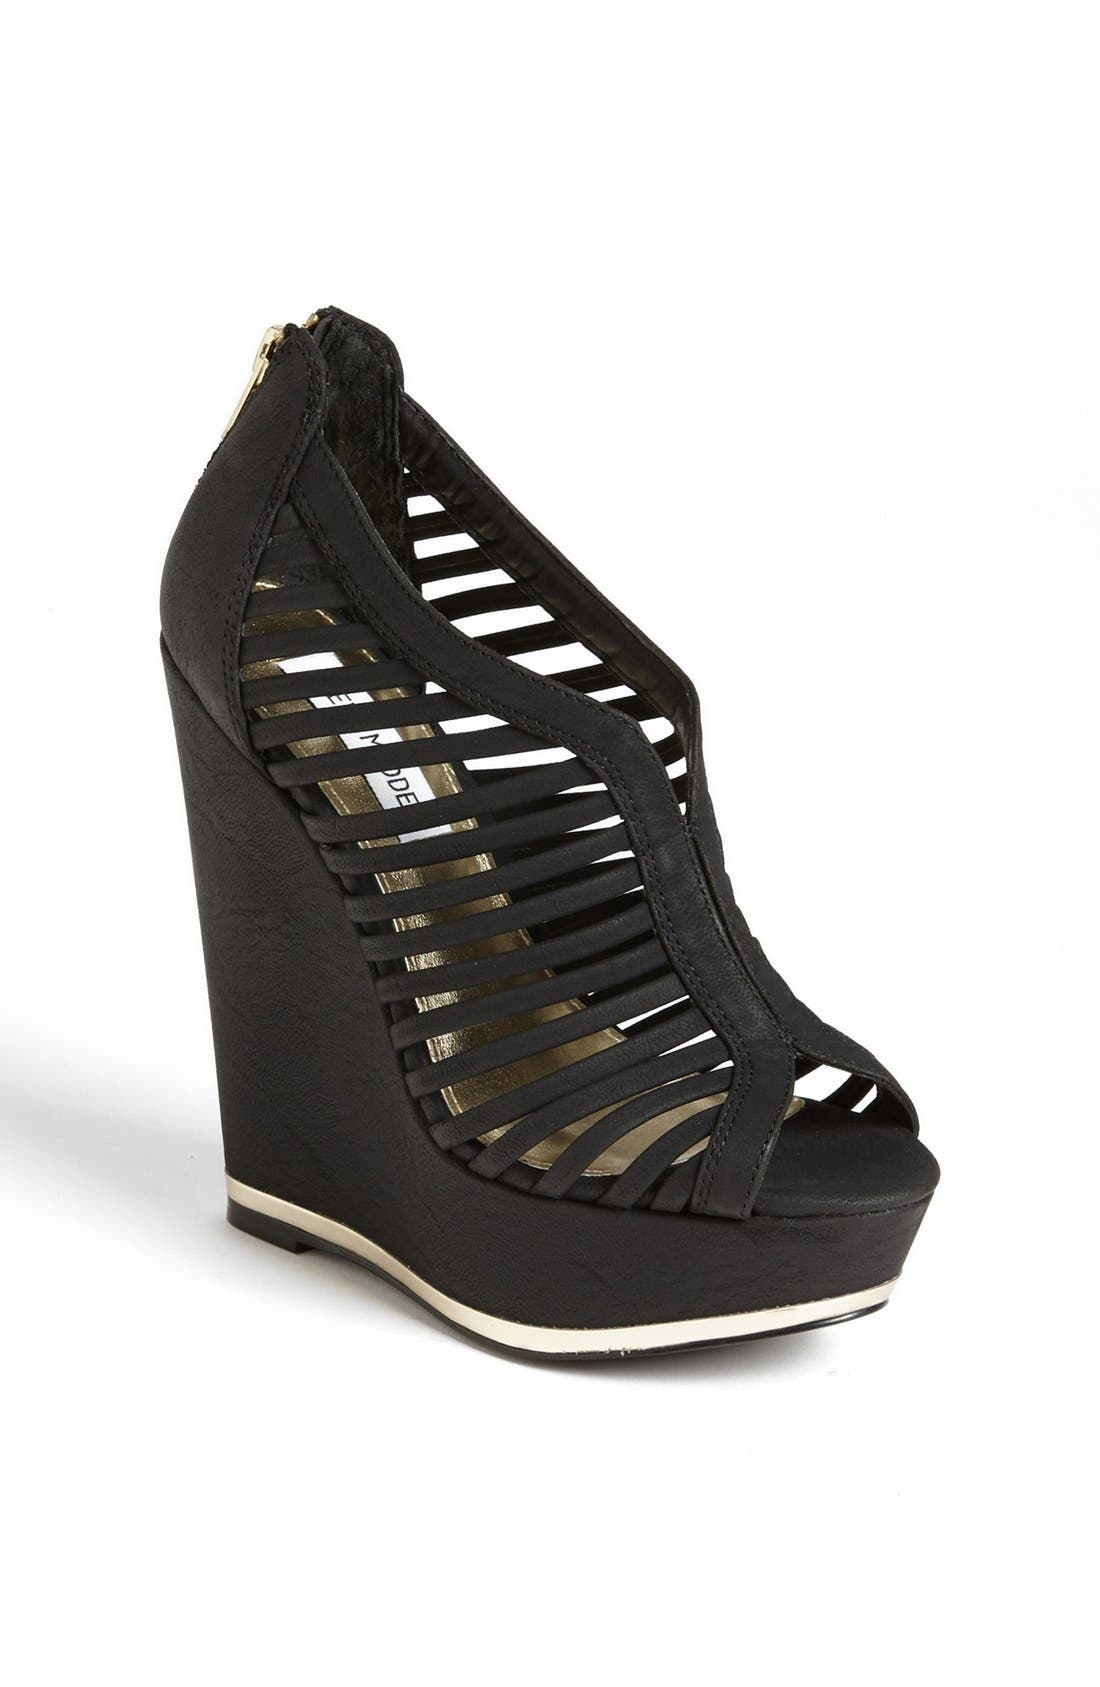 Alternate Image 1 Selected - Steve Madden 'Wresse' Wedge Bootie